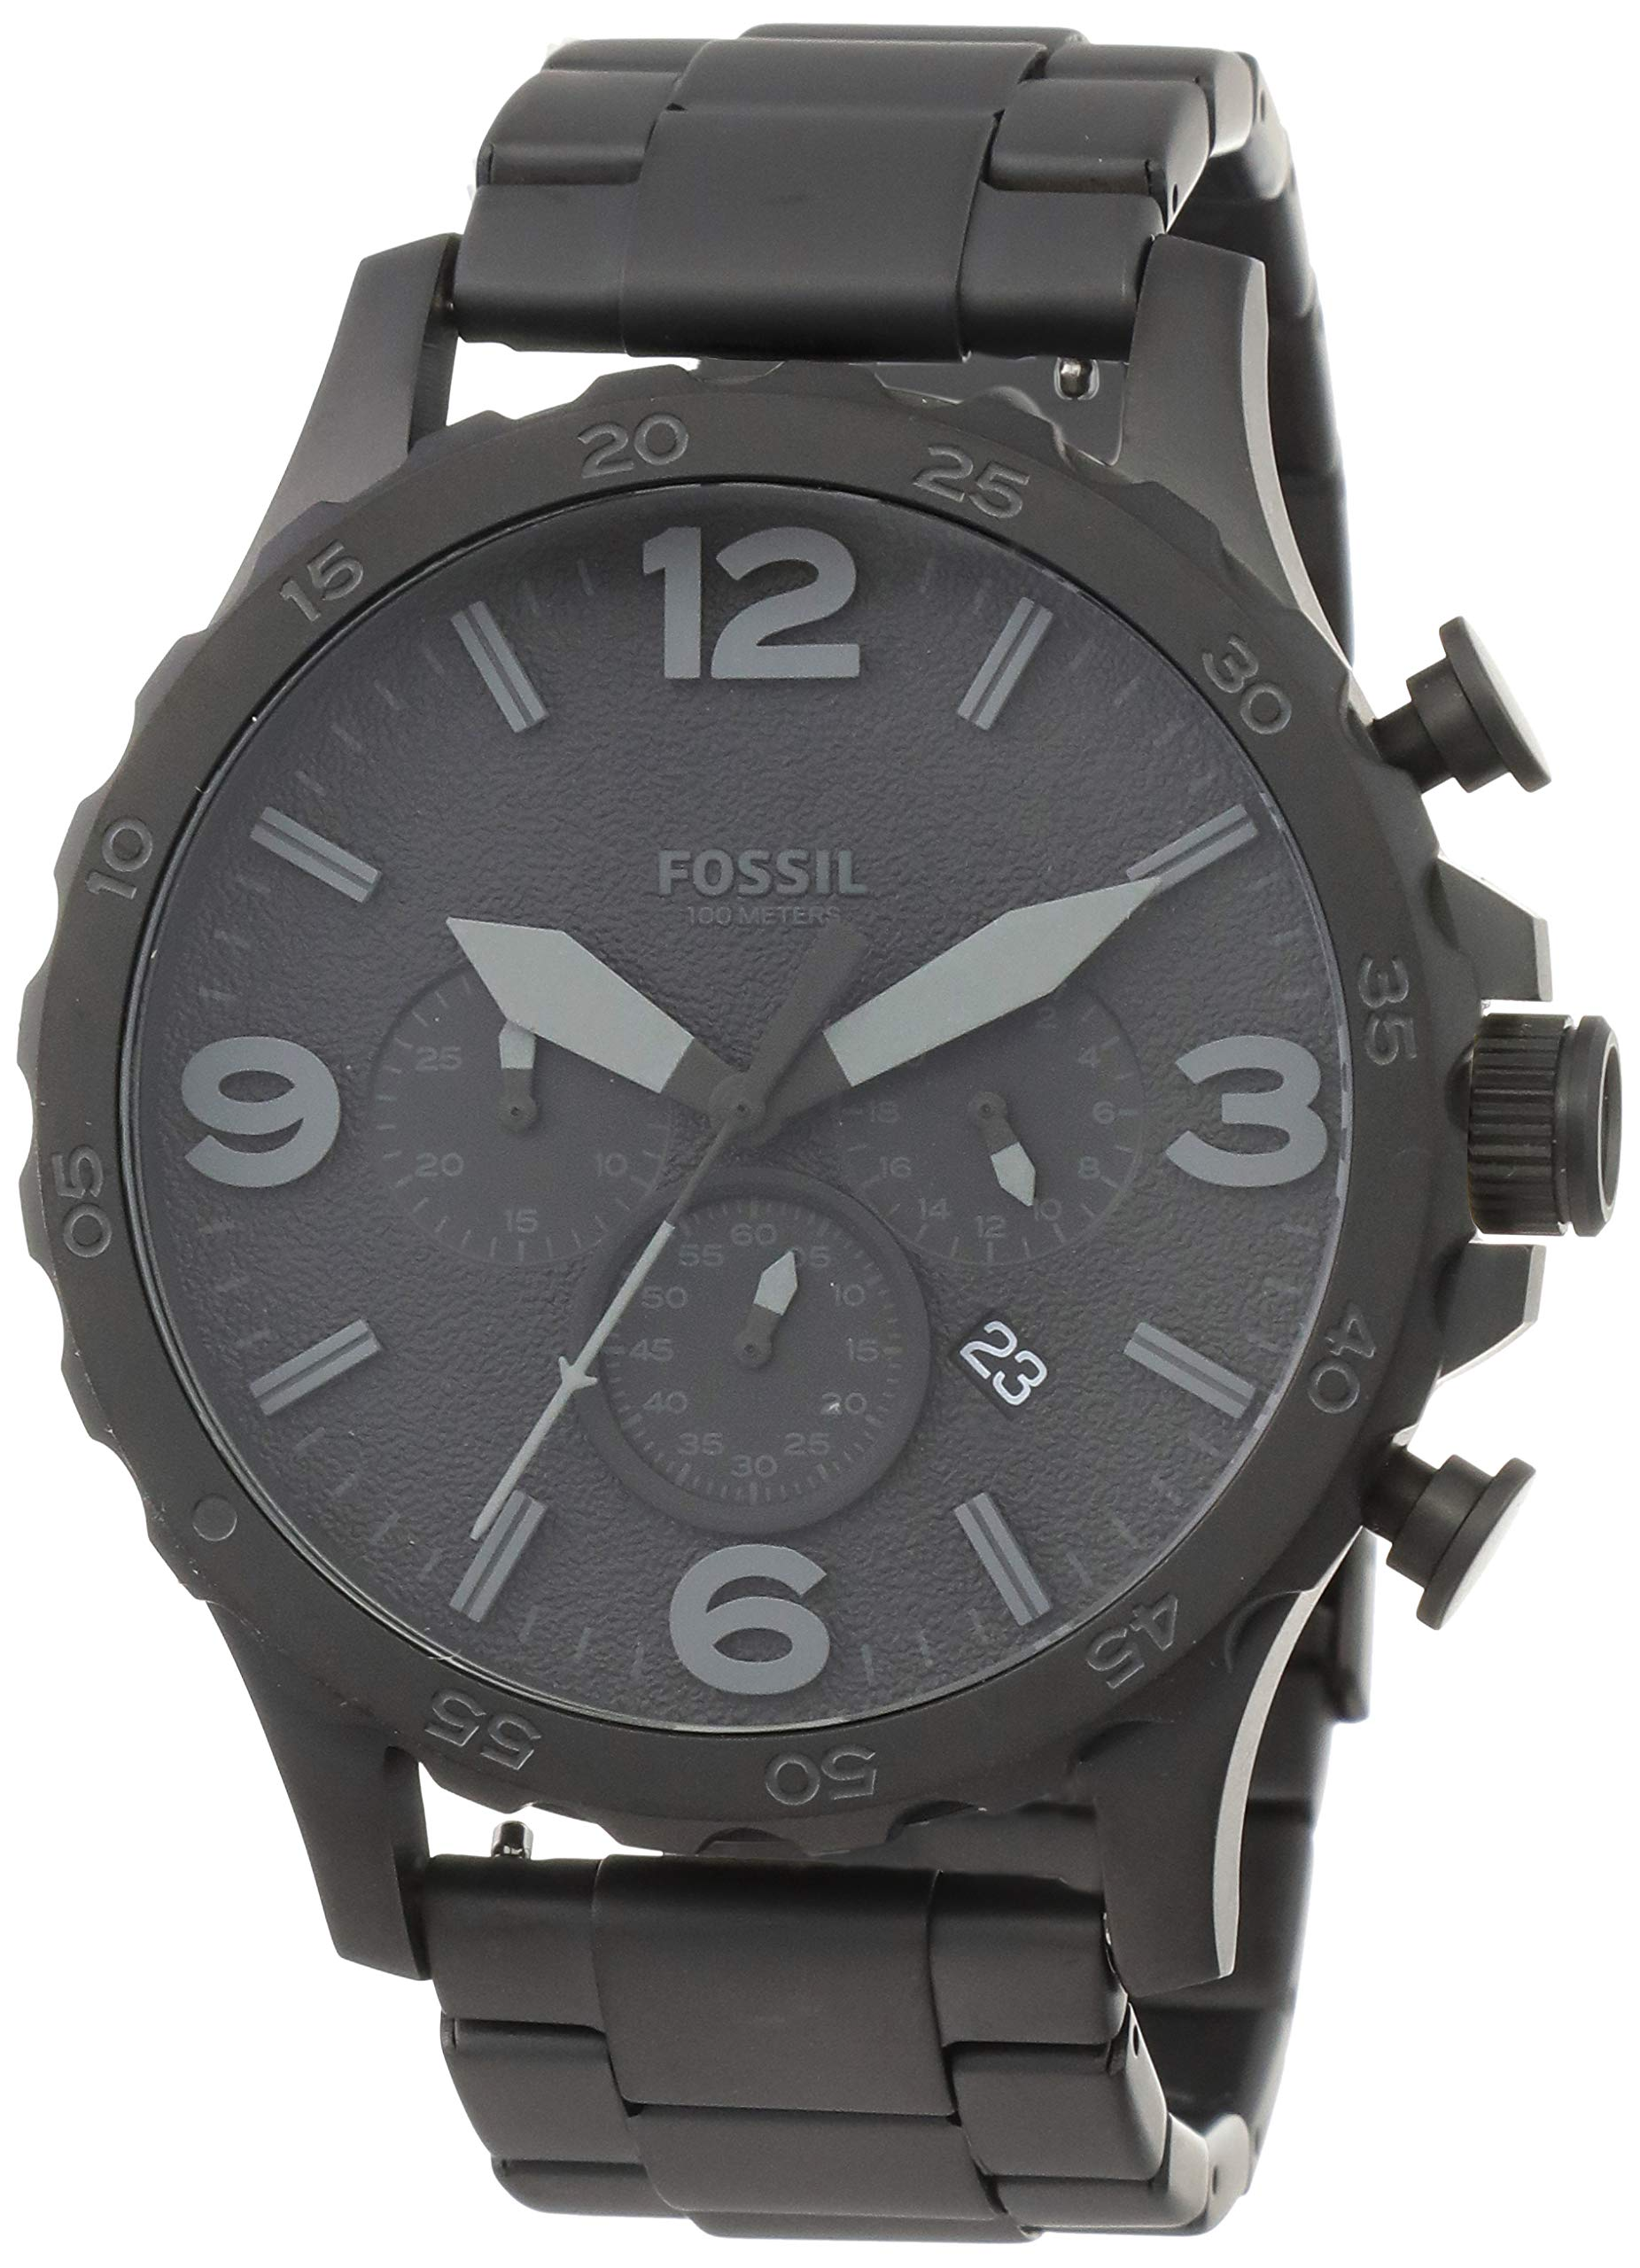 Fossil Men's Nate Quartz Stainless Steel Chronograph Watch, Color: Black (Model: JR1401) by Fossil (Image #1)